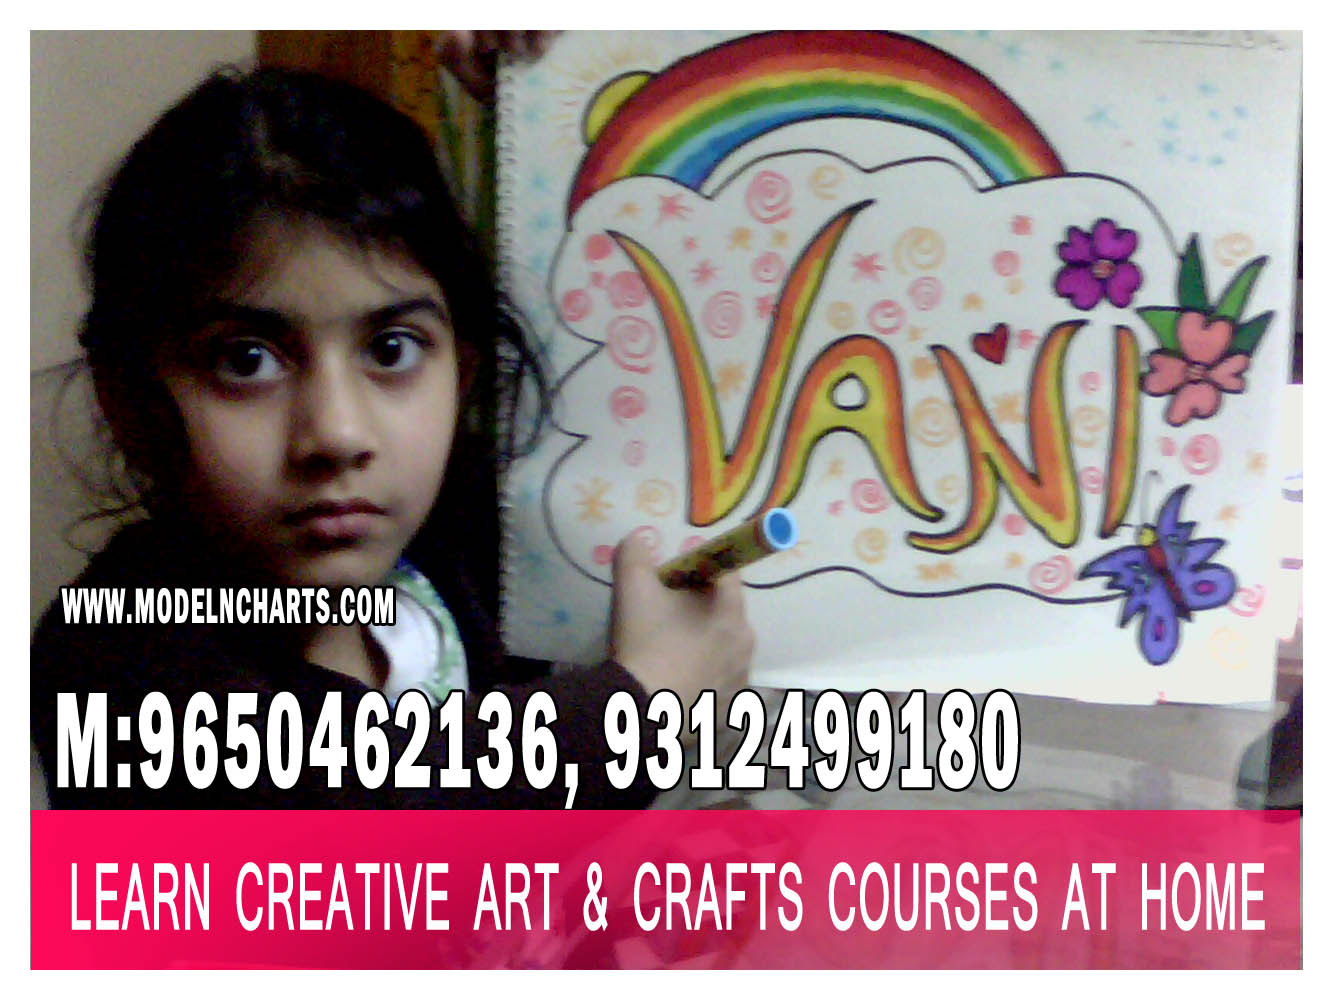 ... PAINTING M:- 9650462136 HOME CLASSES IN ALL DELHI NCR GURGAON NOIDA